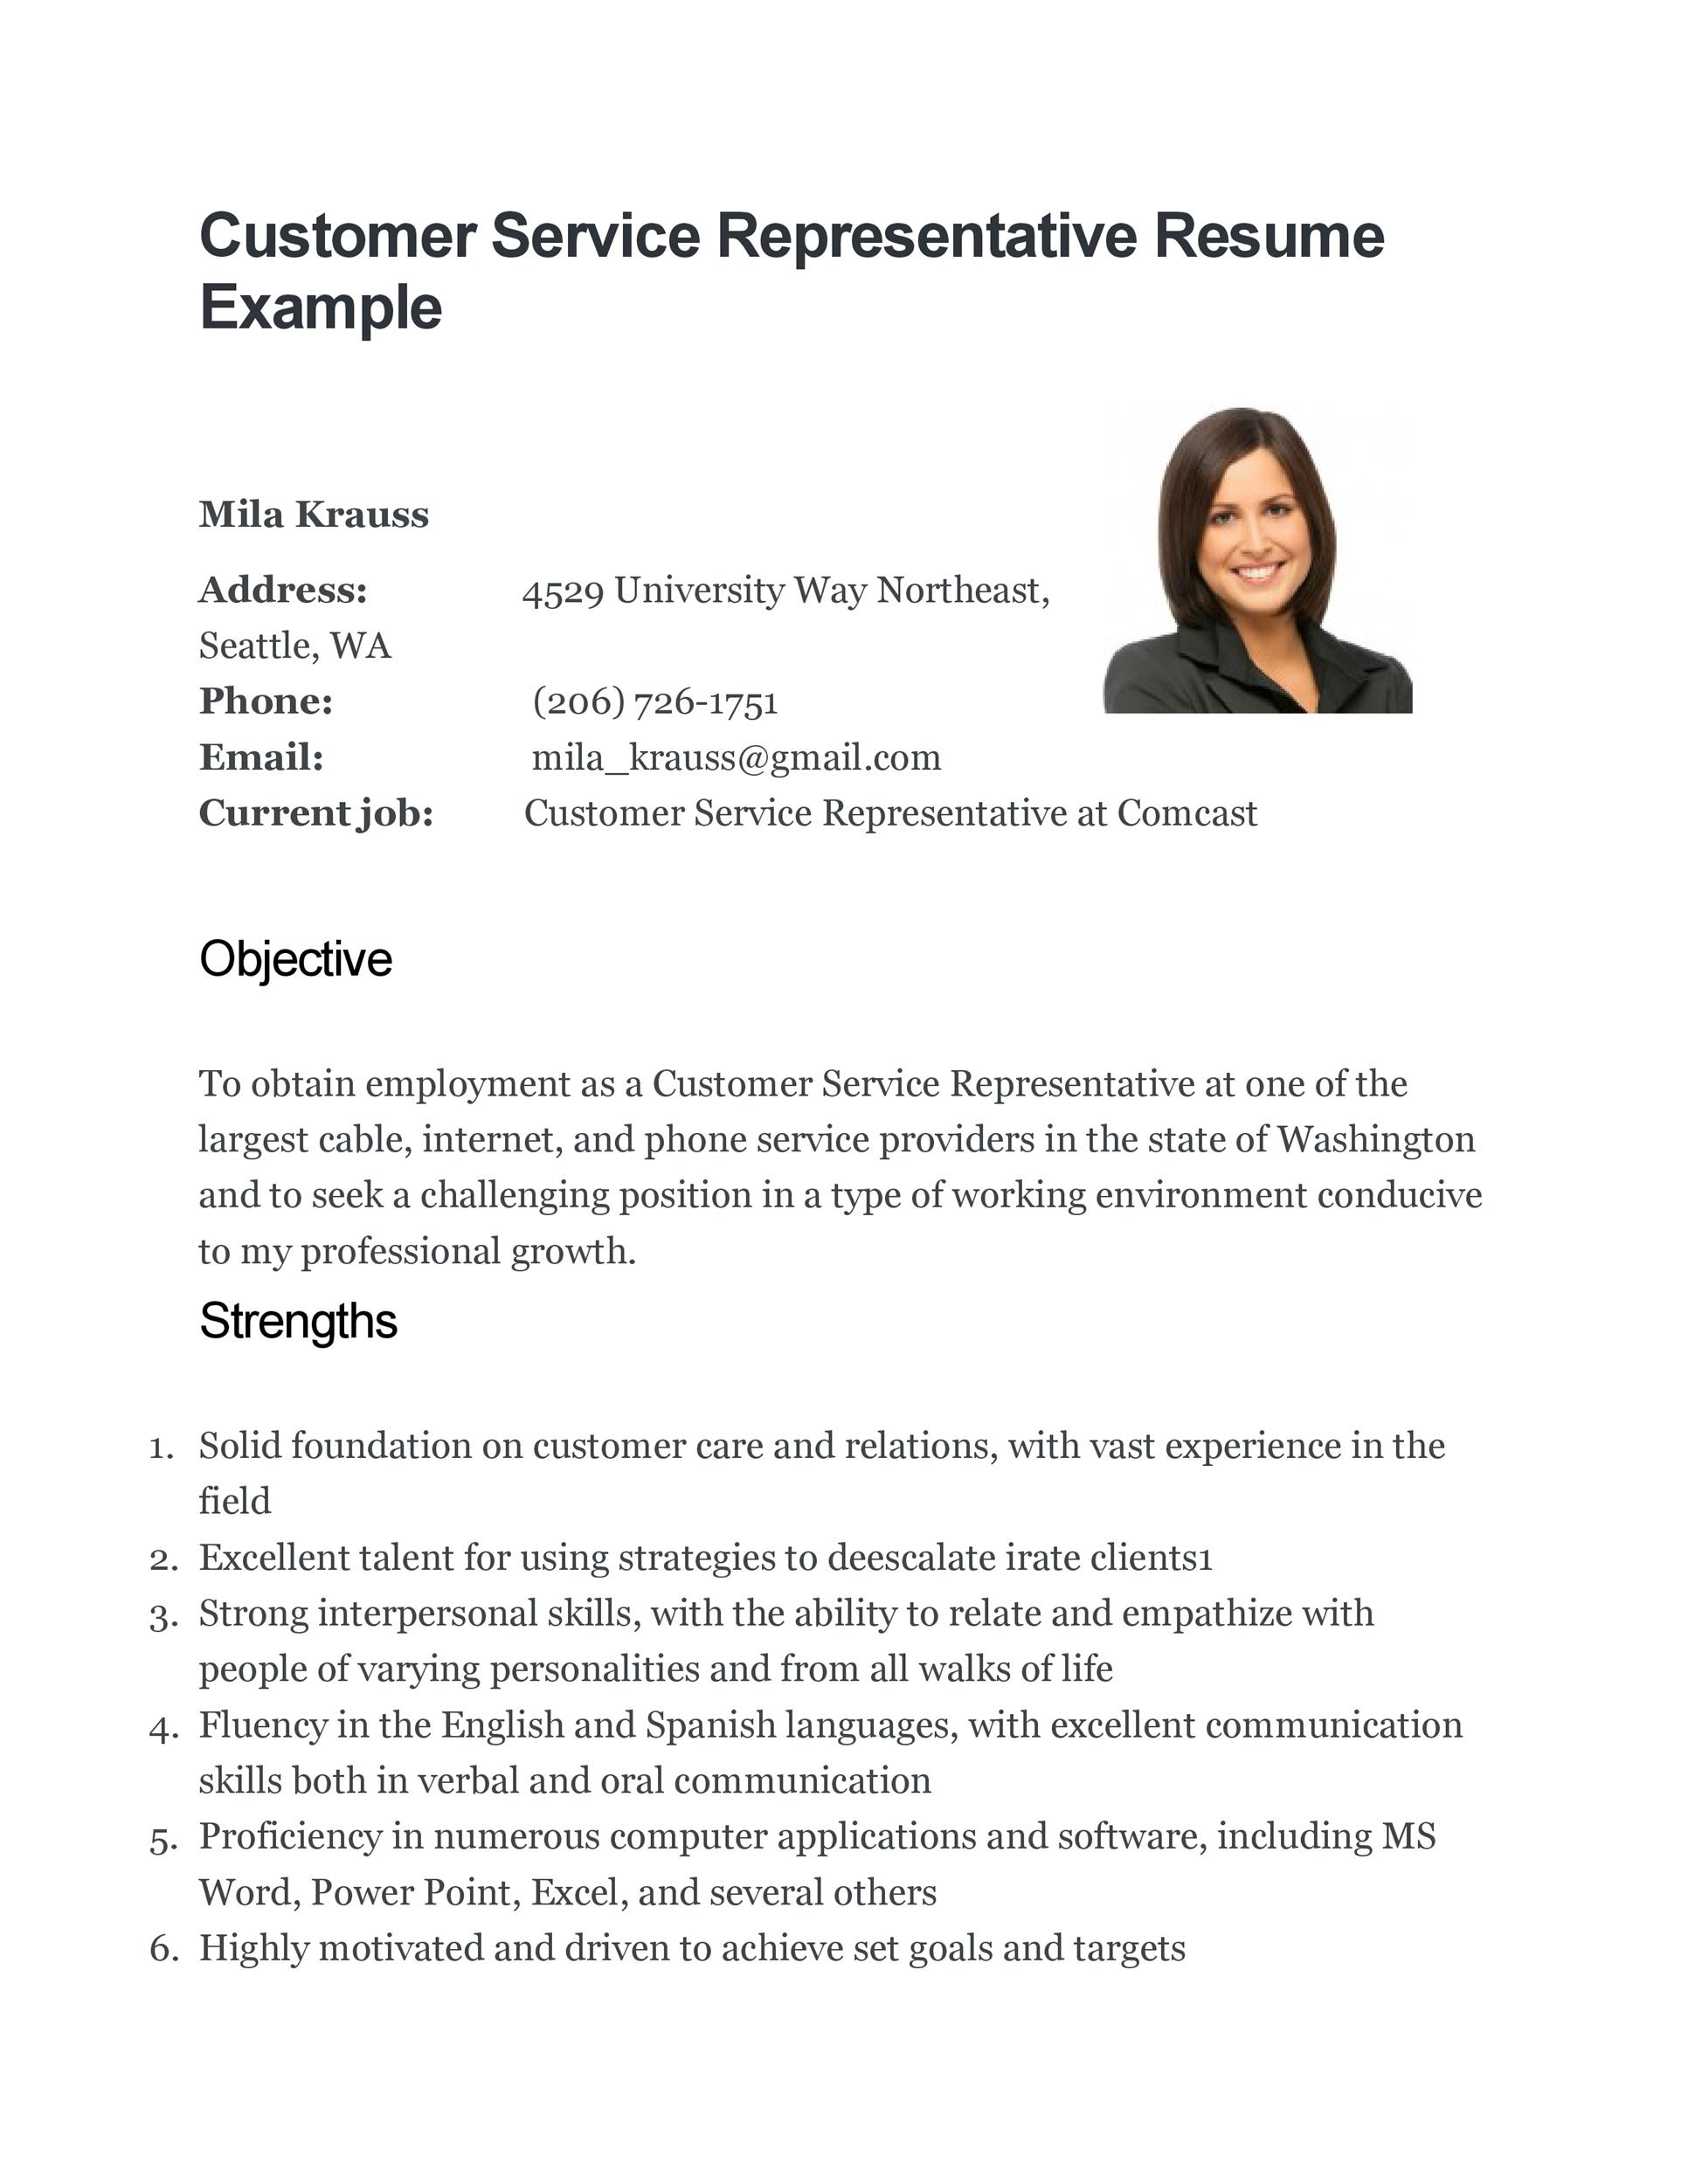 Free Customer Service Resume Template 16